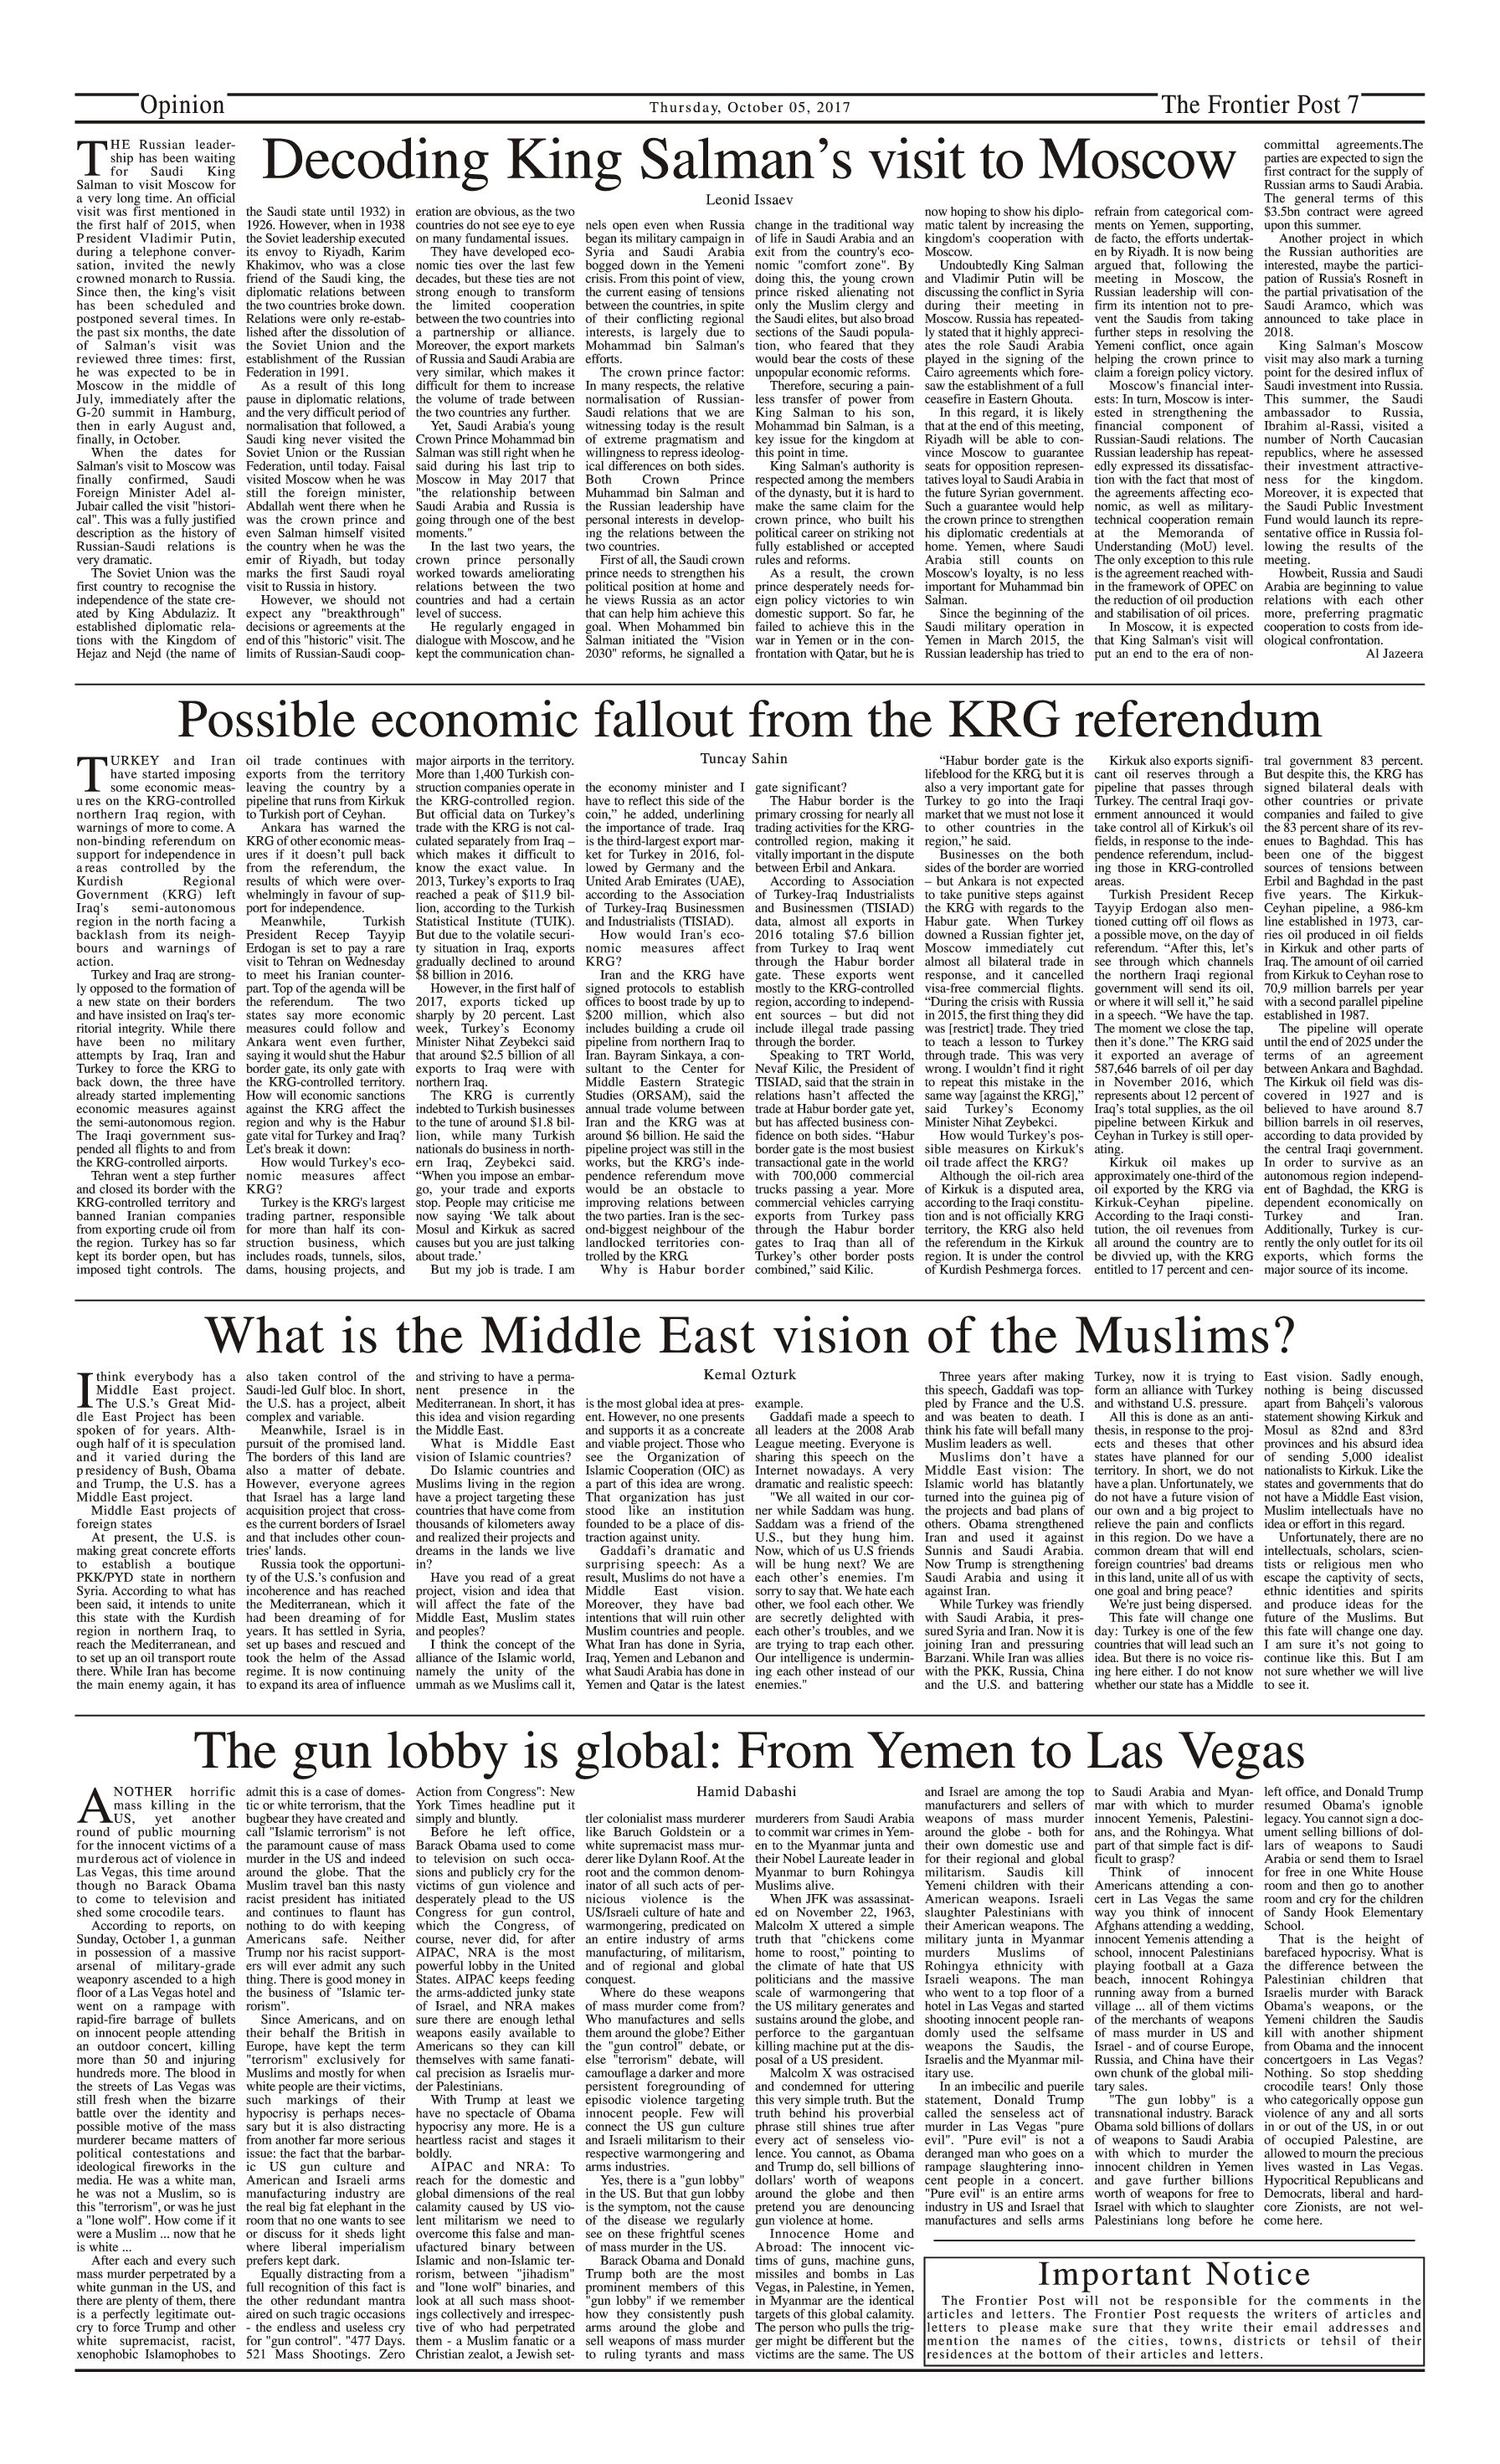 Opinion Page 5-10